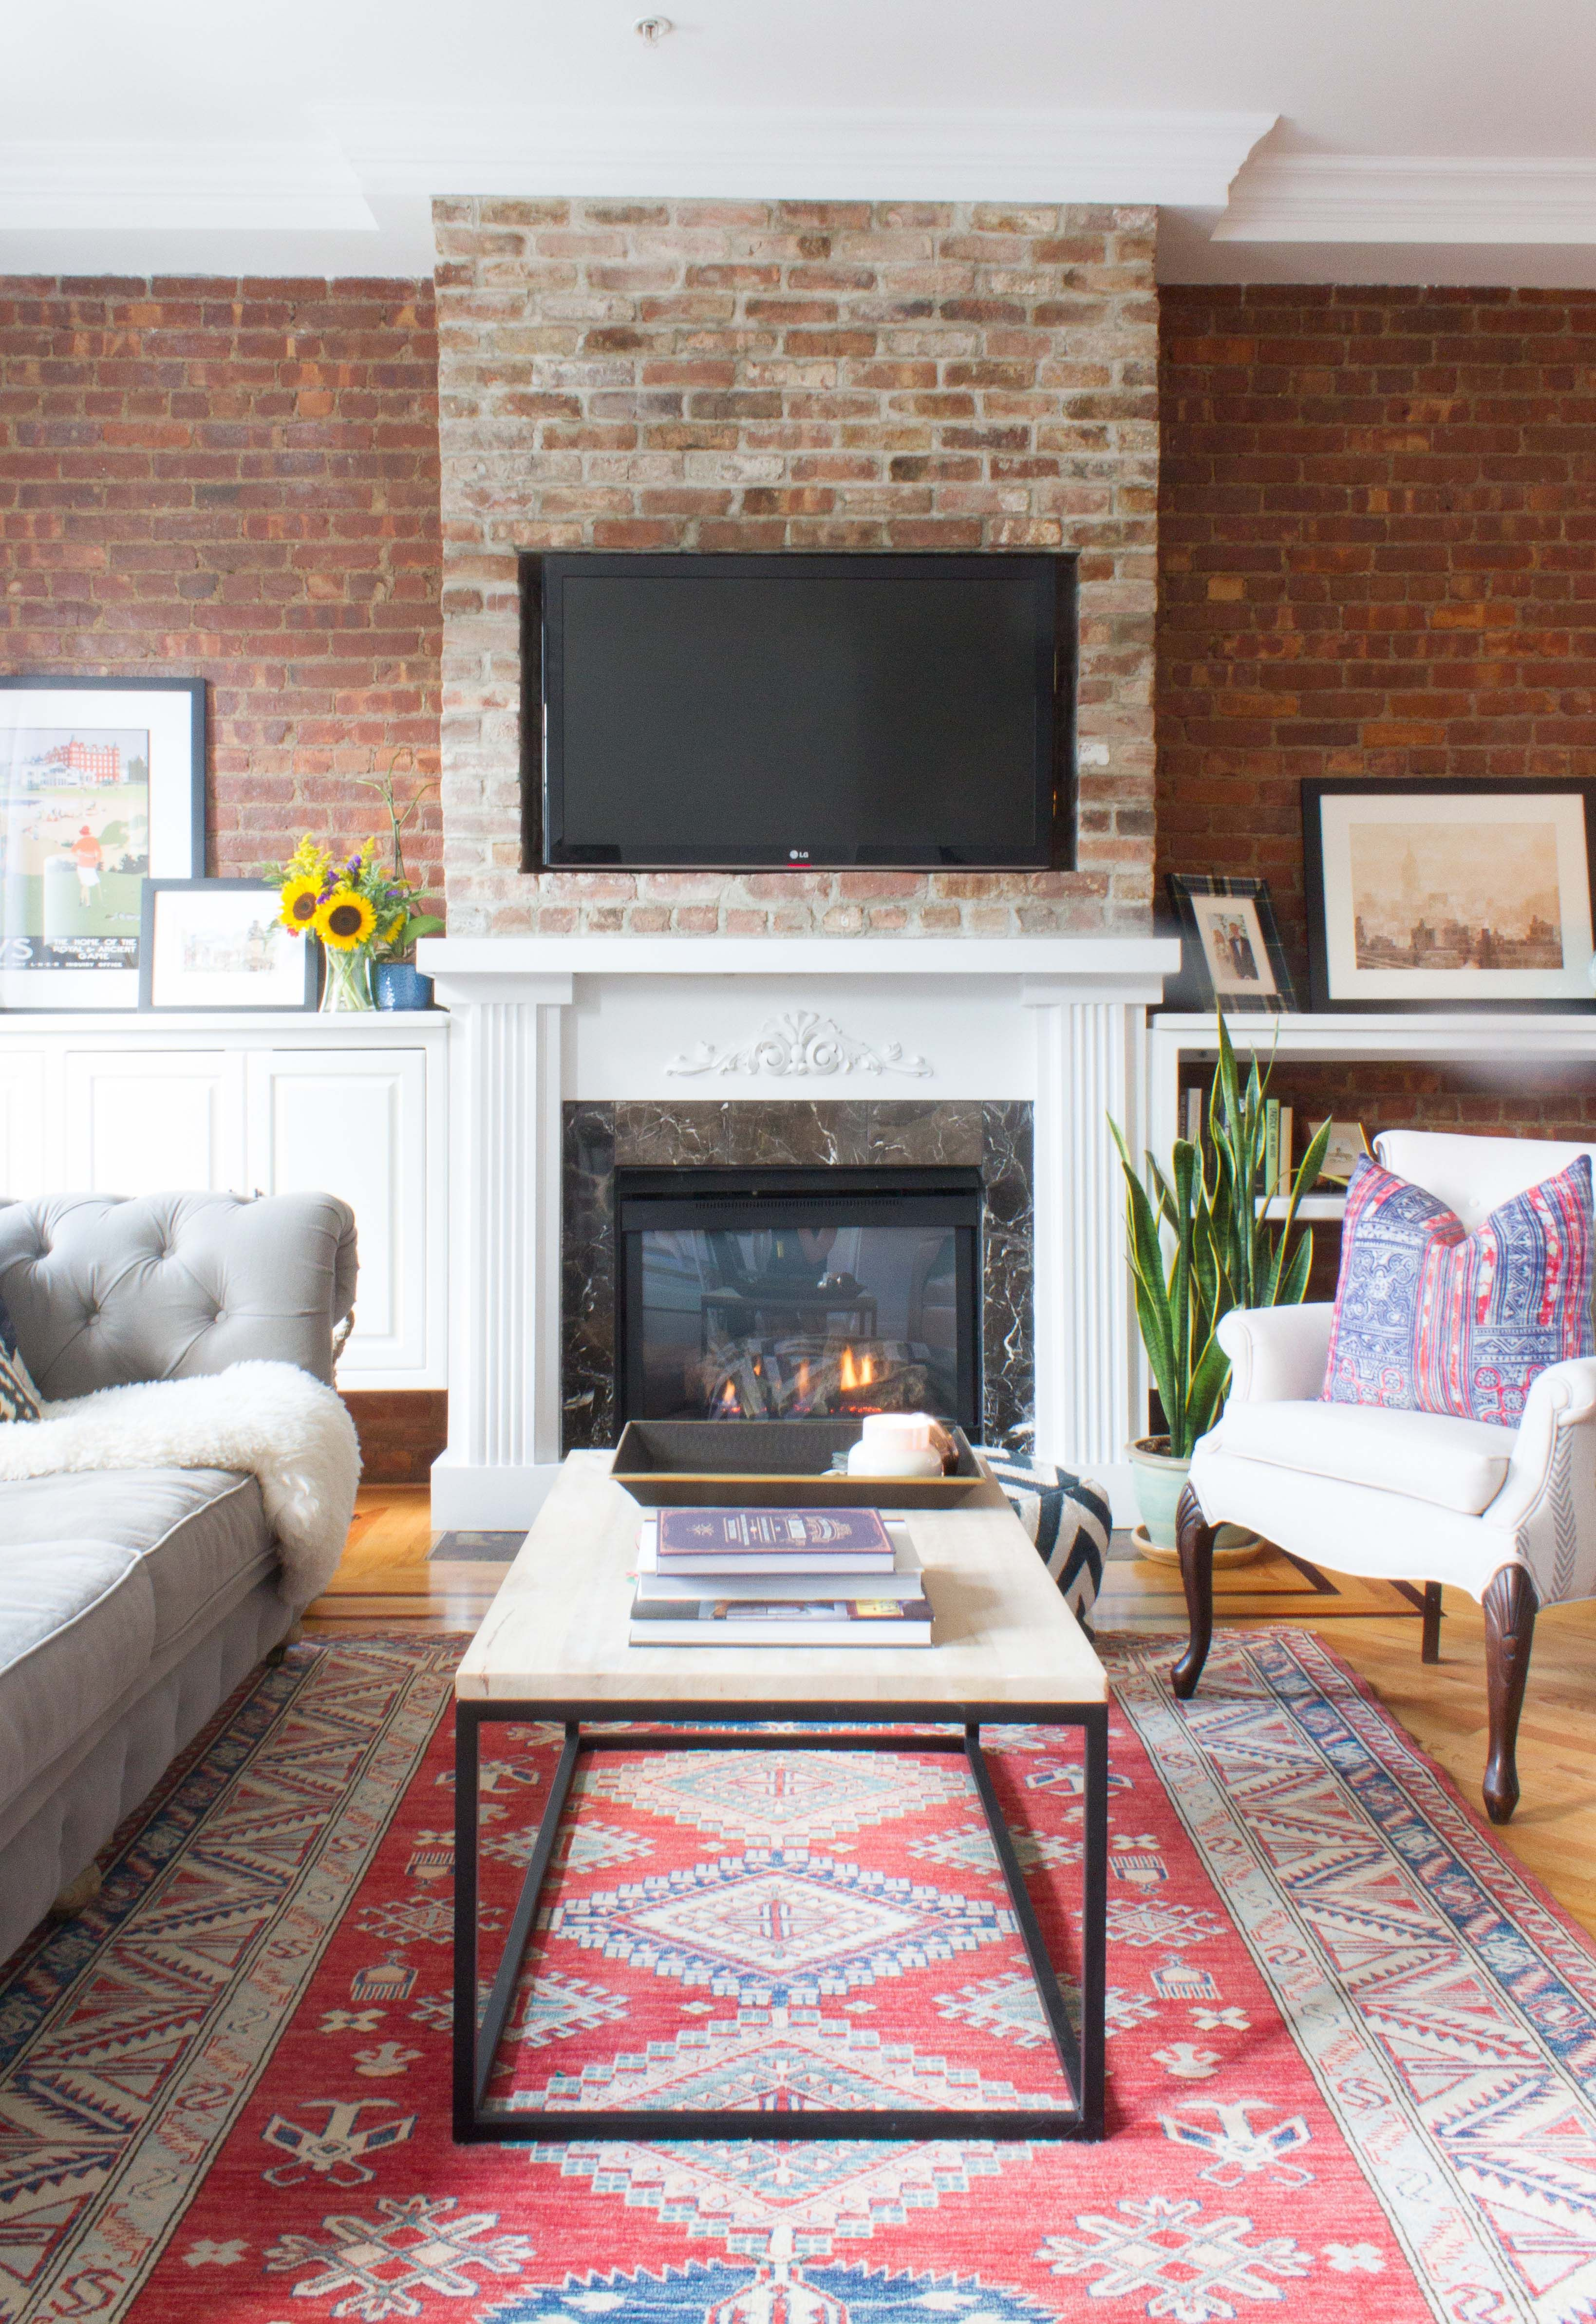 An Eclectic Home That Perfectly Balances a